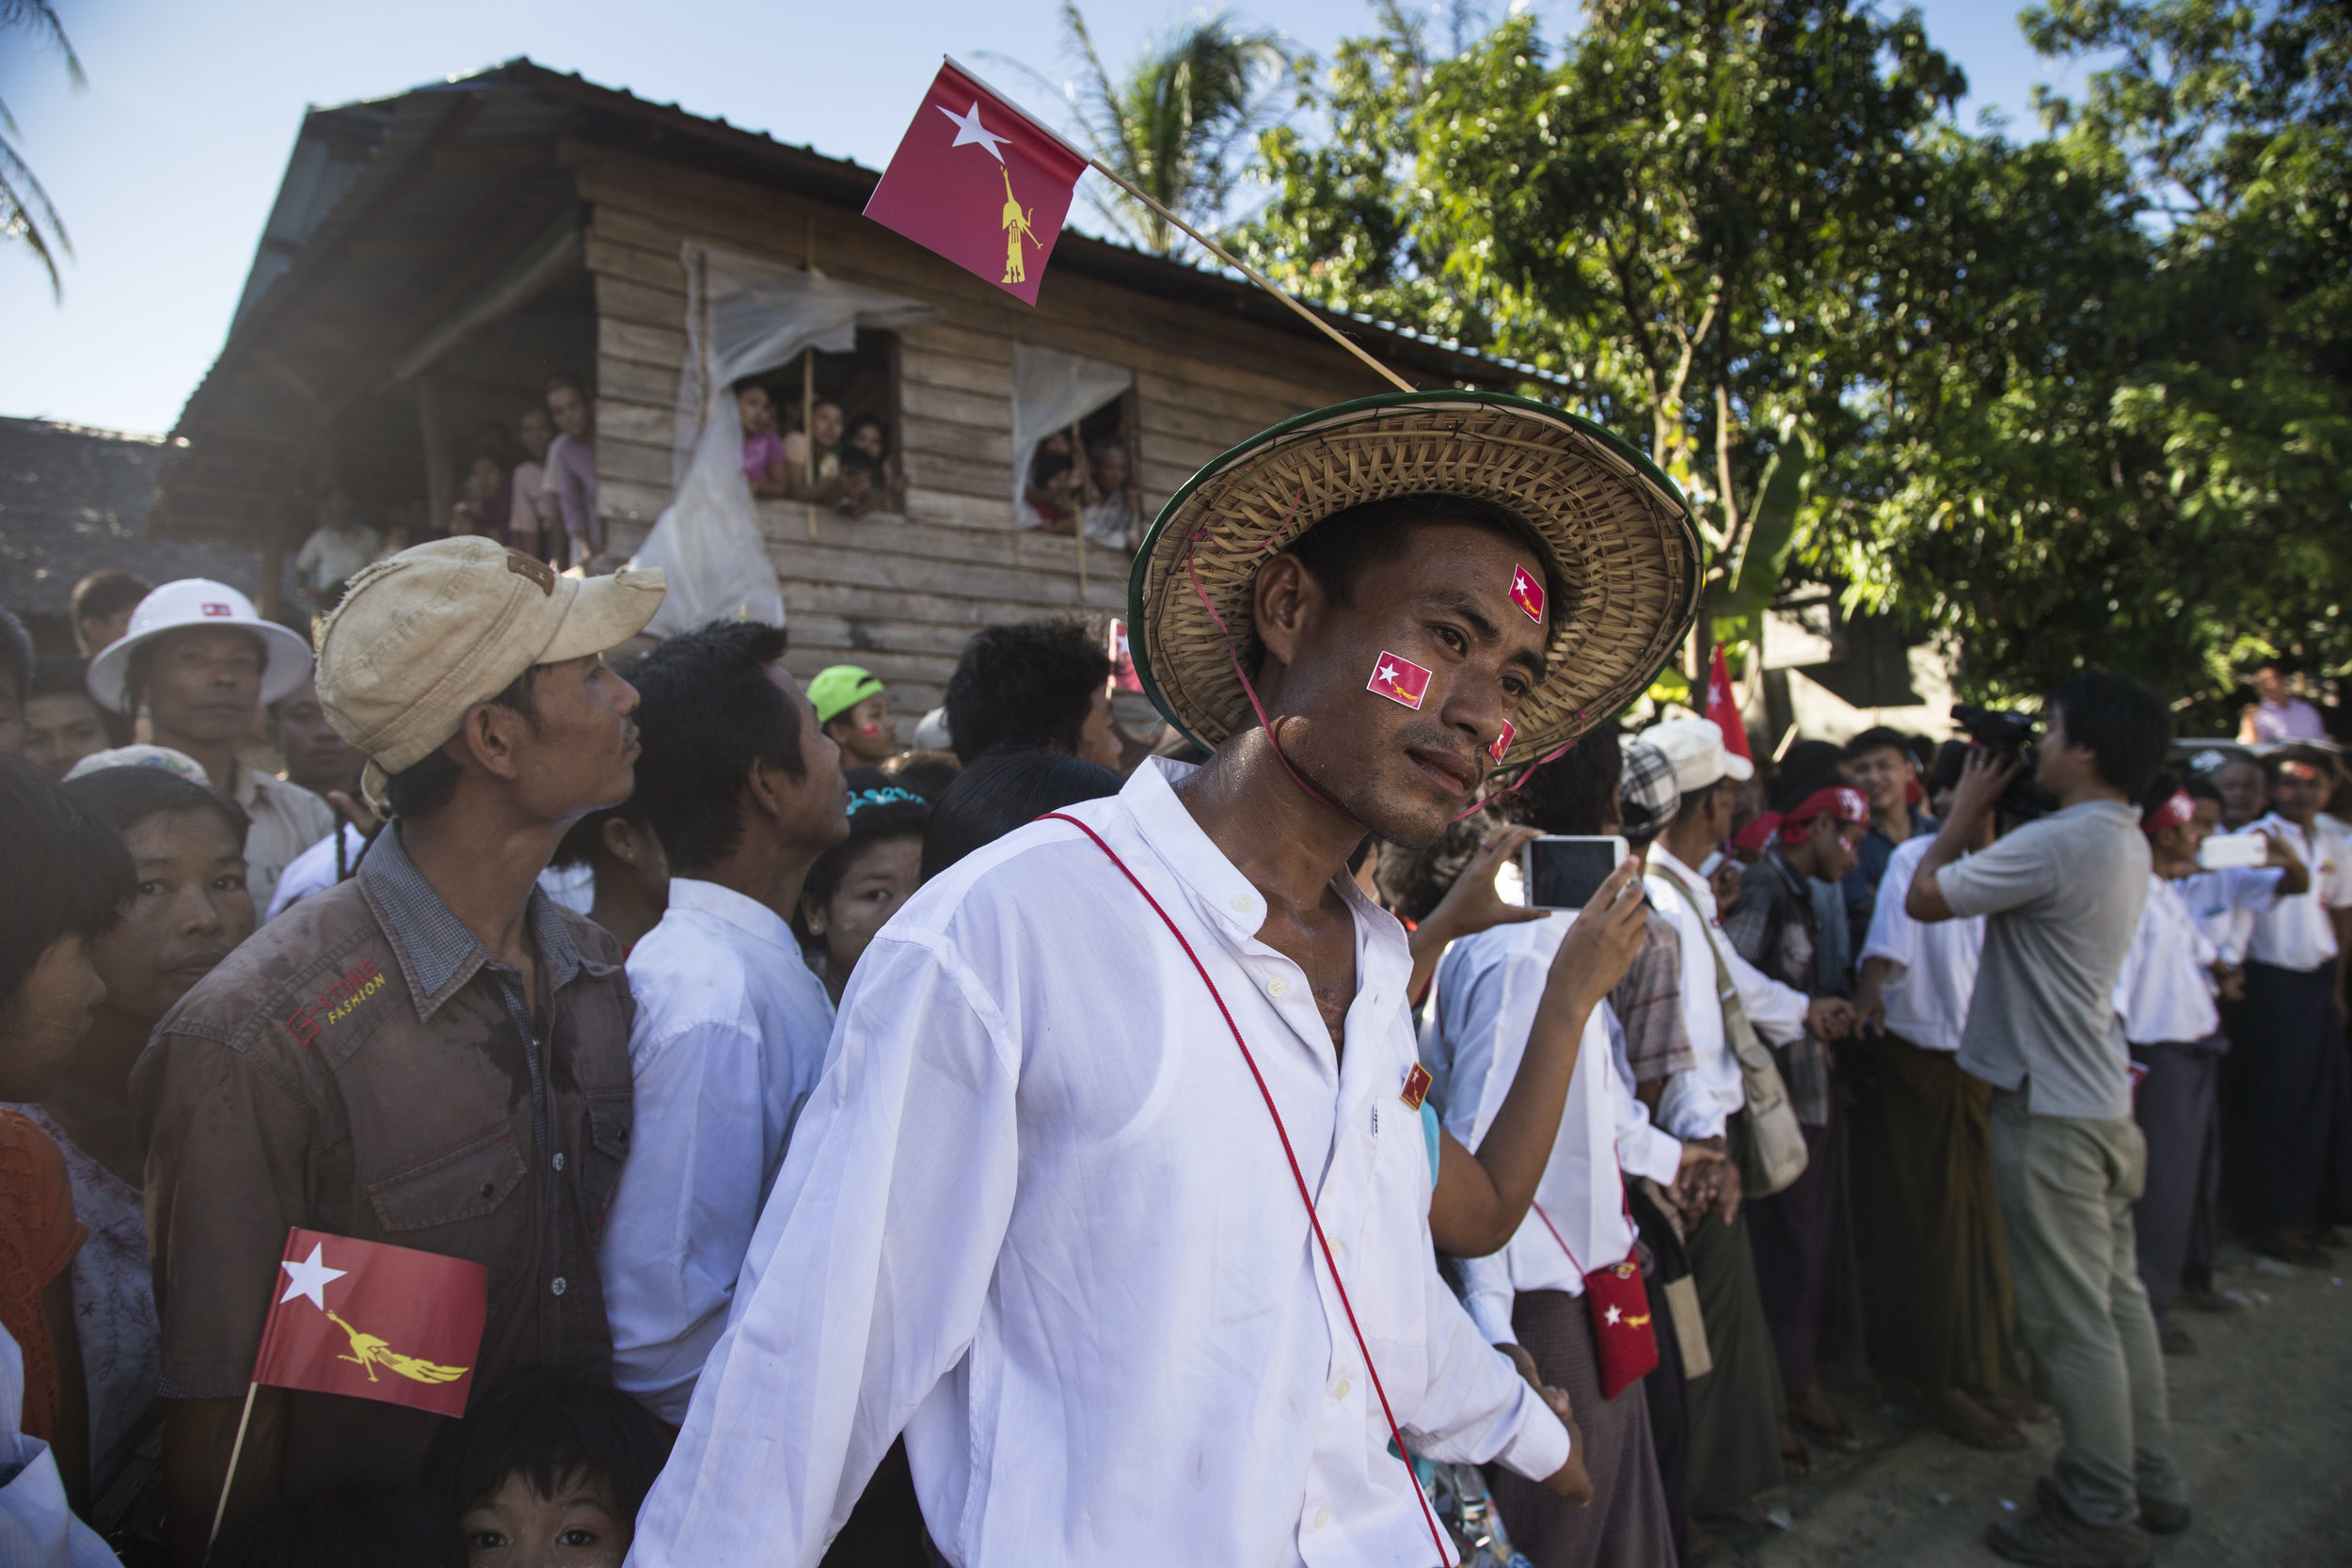 Arakan people the Ethnic Minority  from Rakhine state lines up to see Daw Aung San Suu Kyi. Photo by Ann Wang